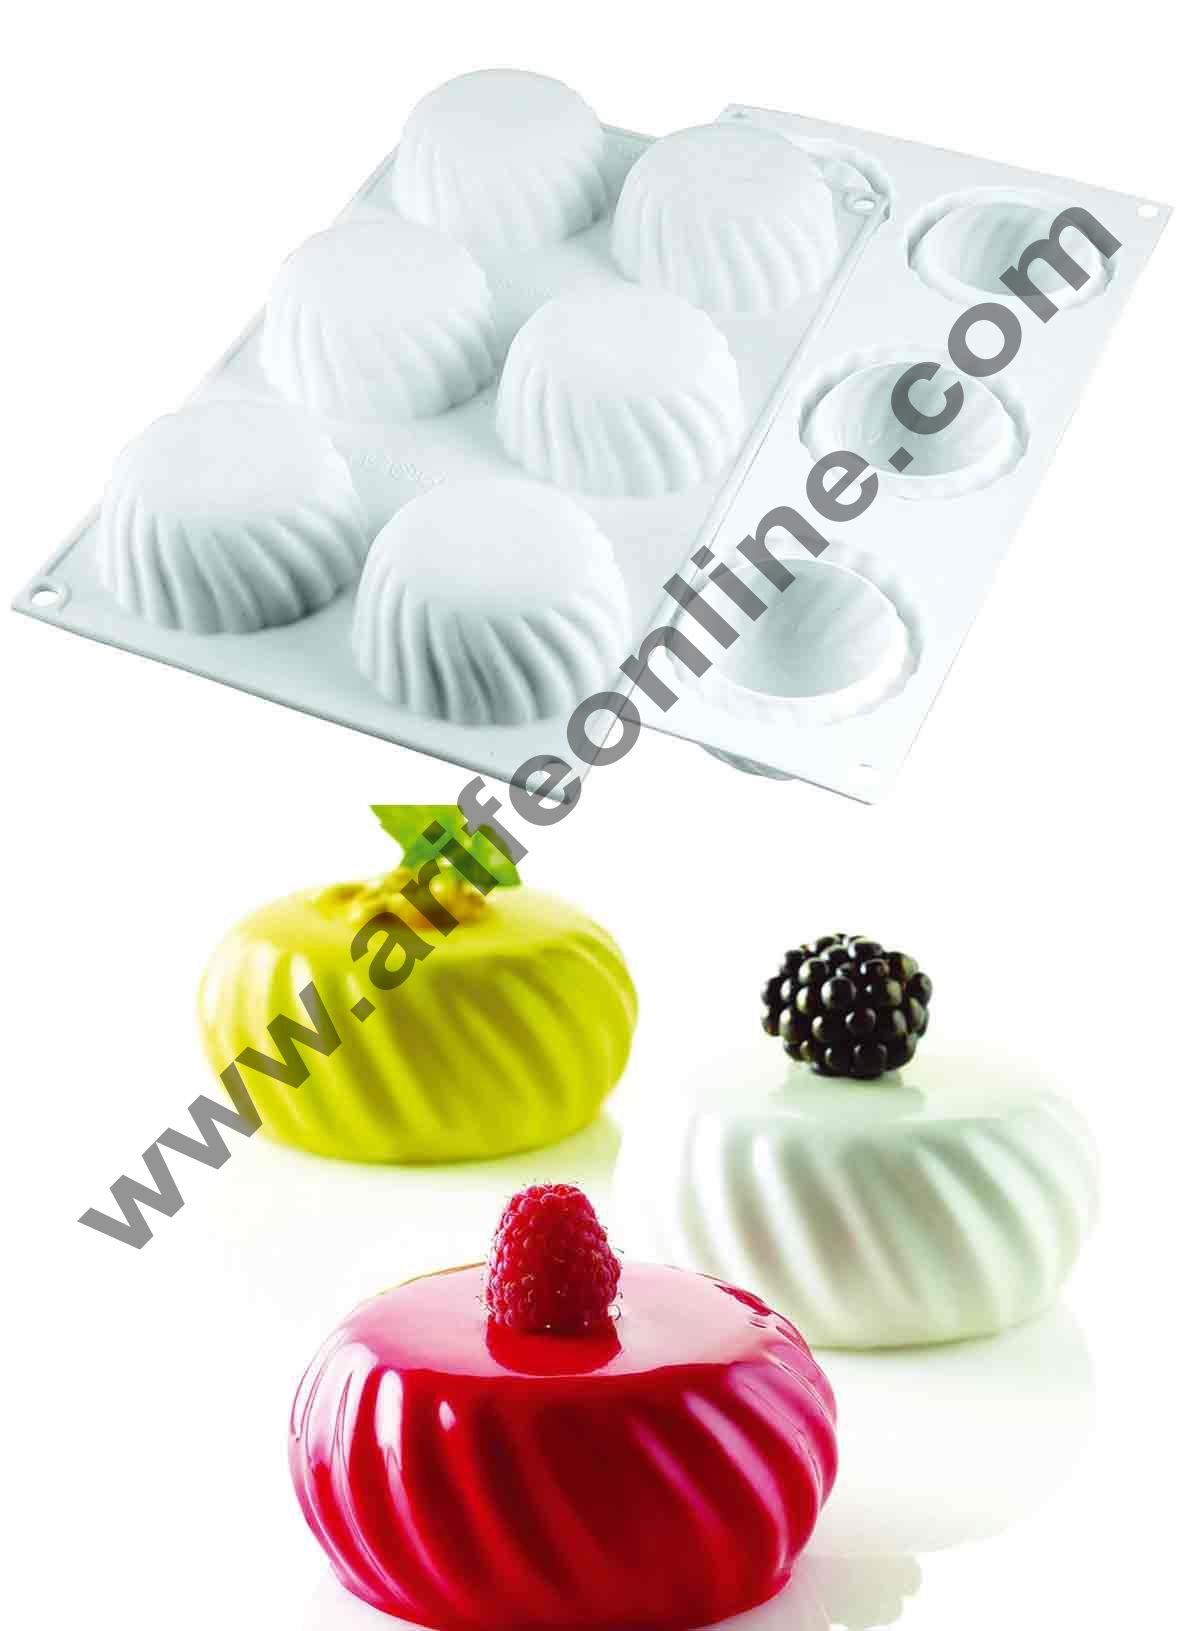 Cake Decor Silicon Samurai Decor Design Cake Mould Mousse Cake Mould Silicon Moulds